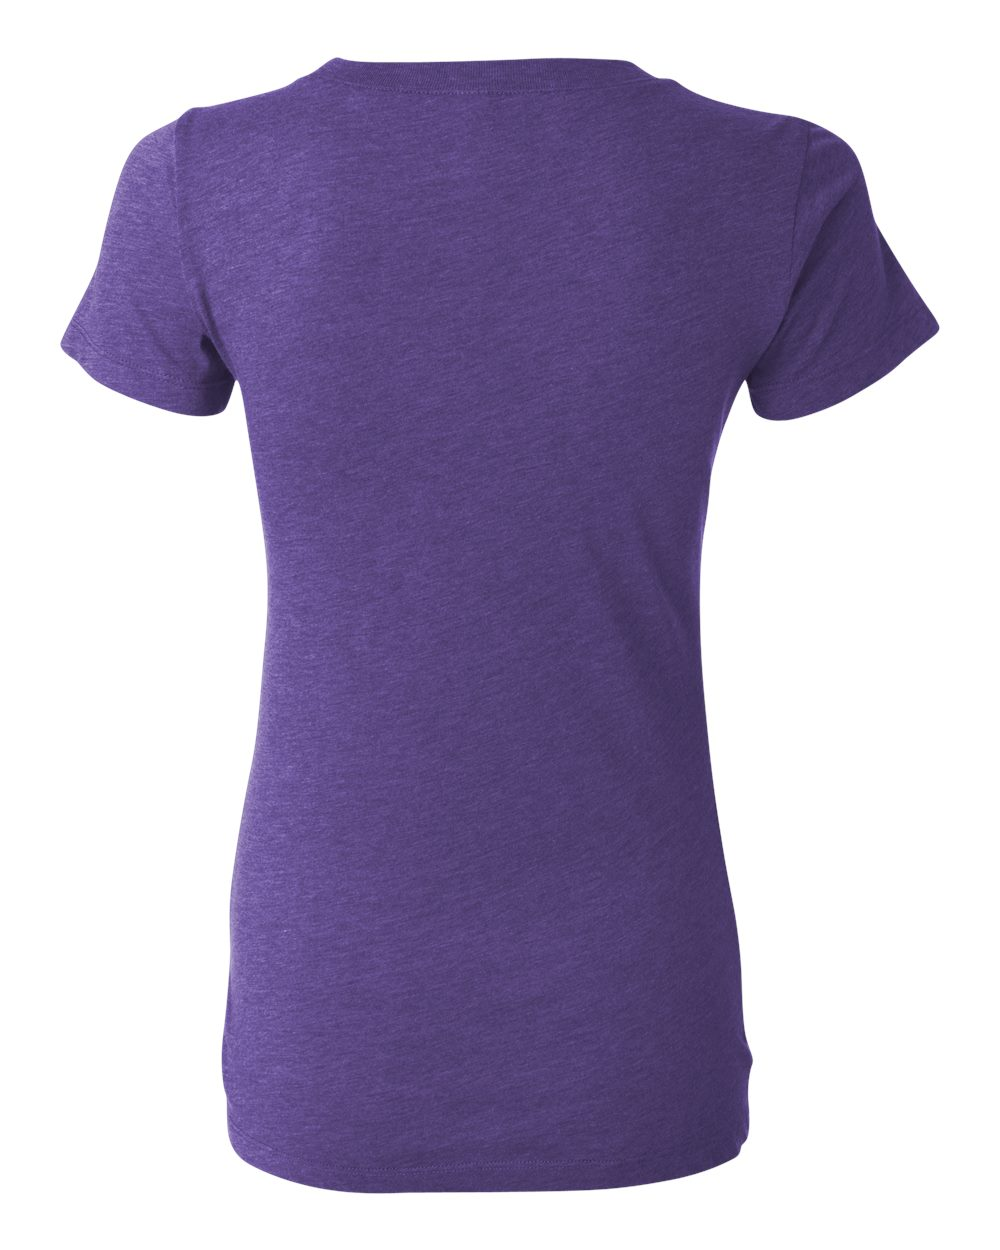 Bella-Canvas-Women-039-s-Triblend-Short-Sleeve-T-Shirt-B8413-S-2XL thumbnail 13